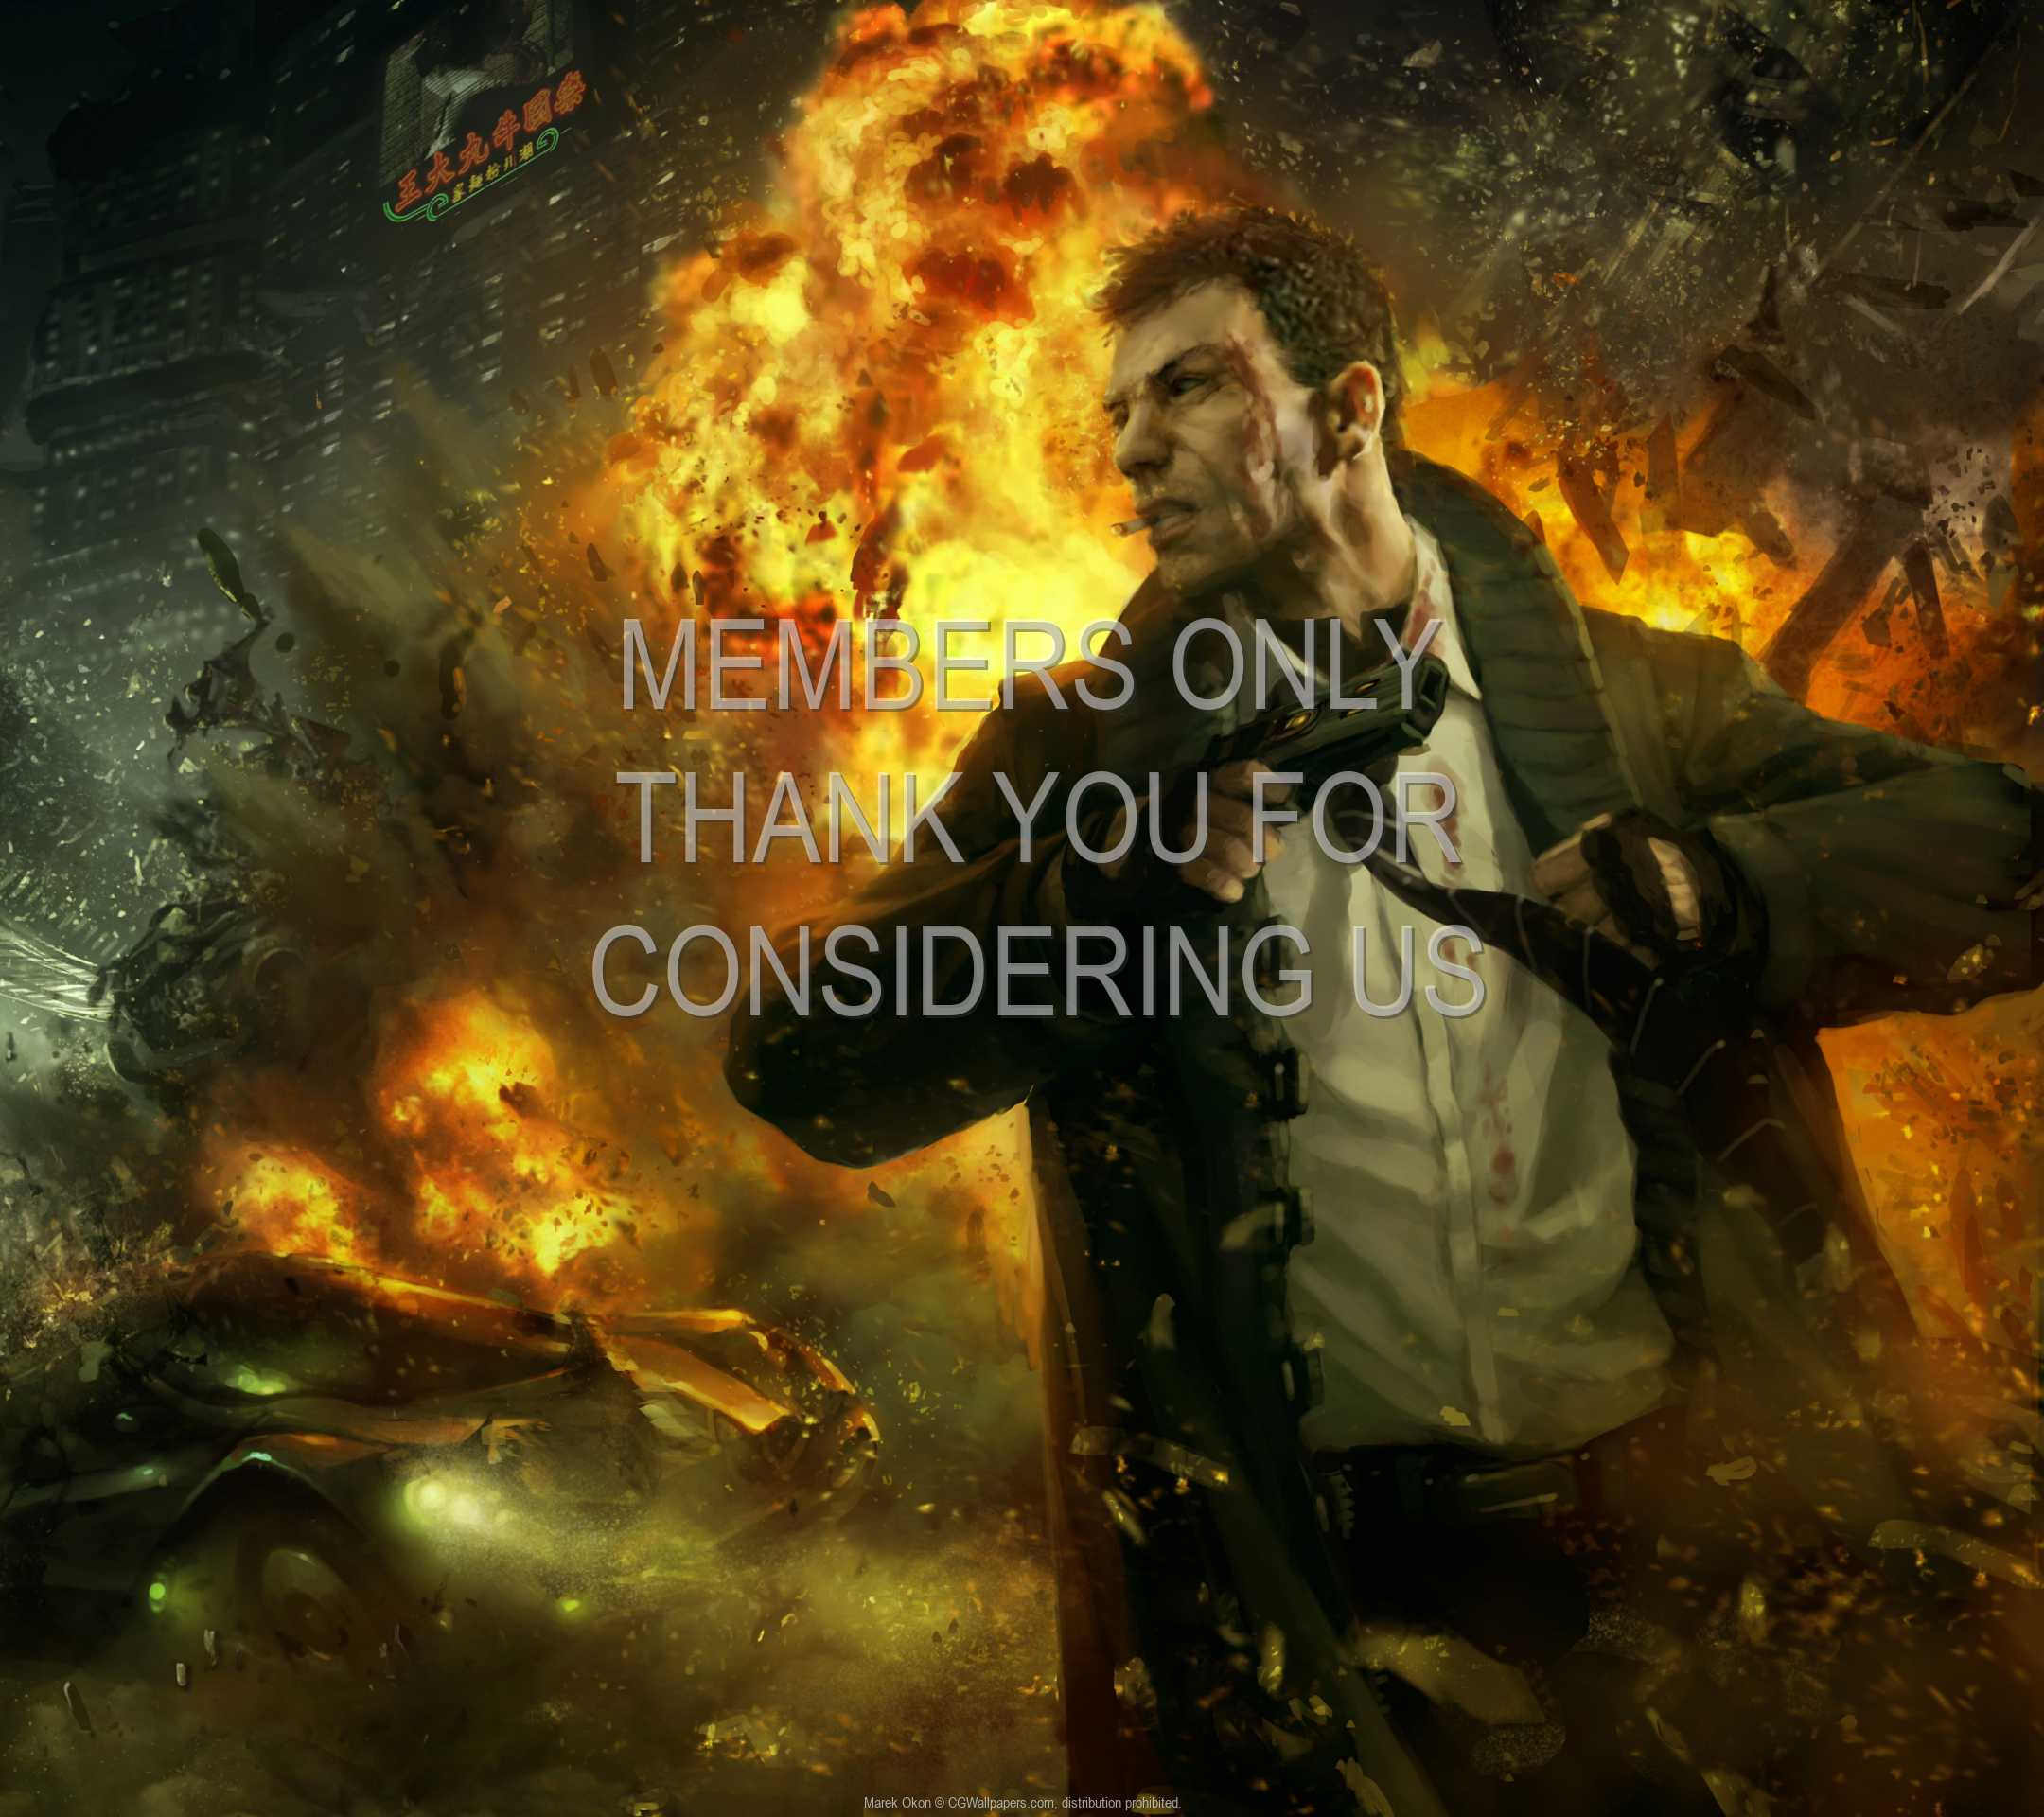 Marek Okon 1080p Horizontal Mobile wallpaper or background 13